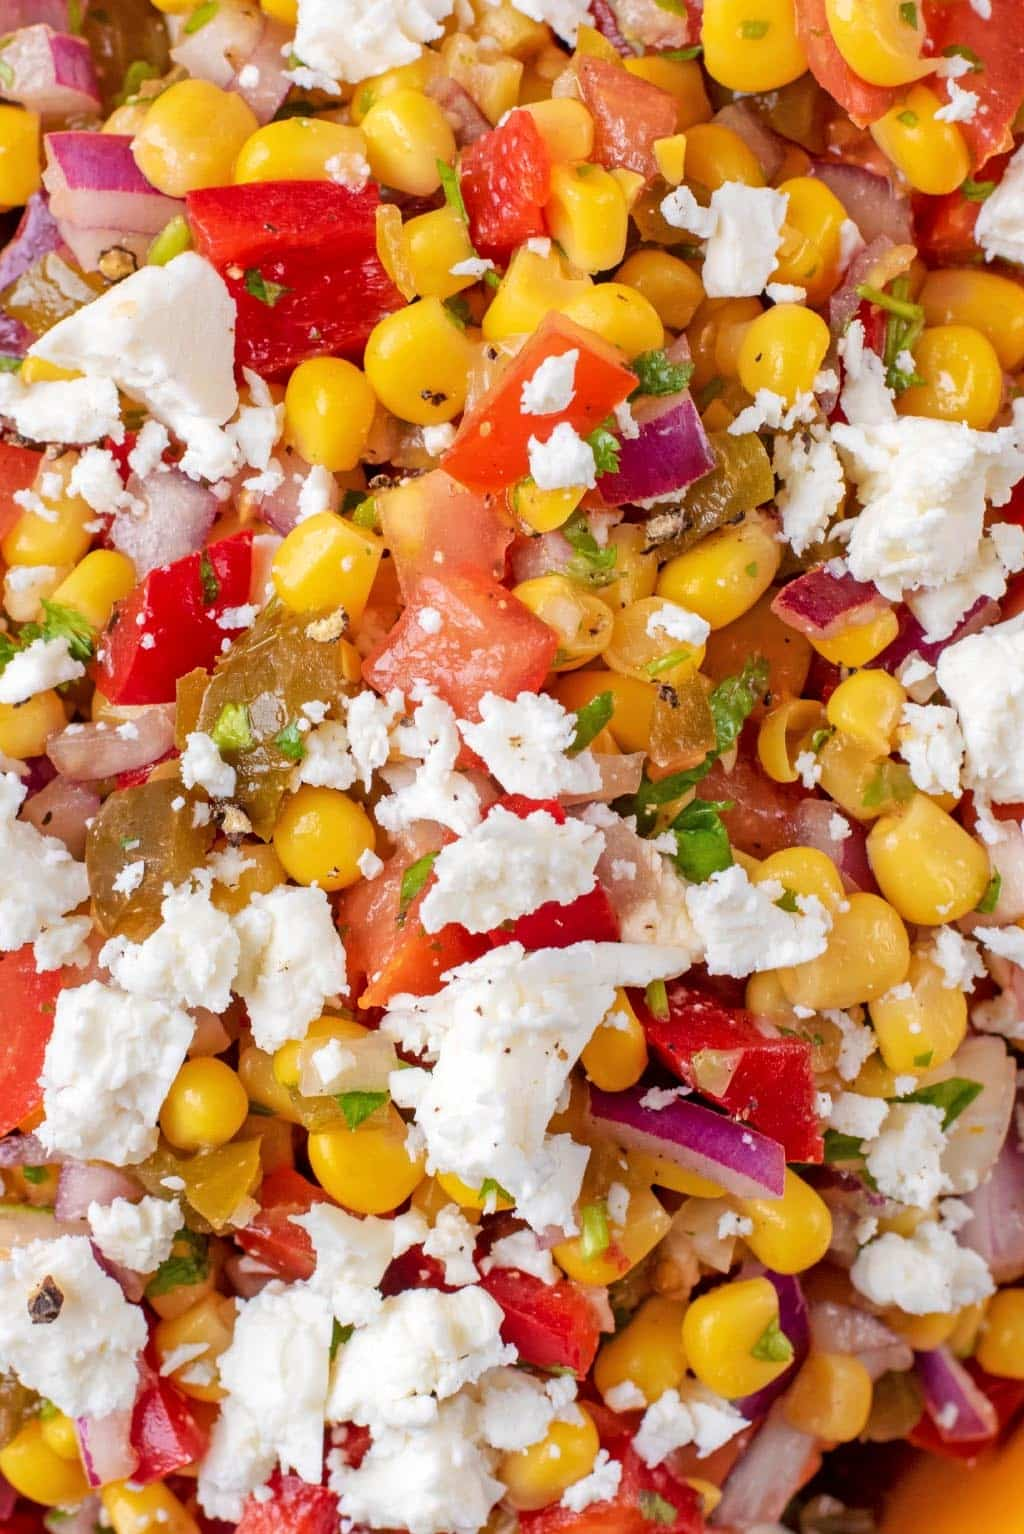 Sweetcorn, chopped peppers and tomatoes, herbs and feta